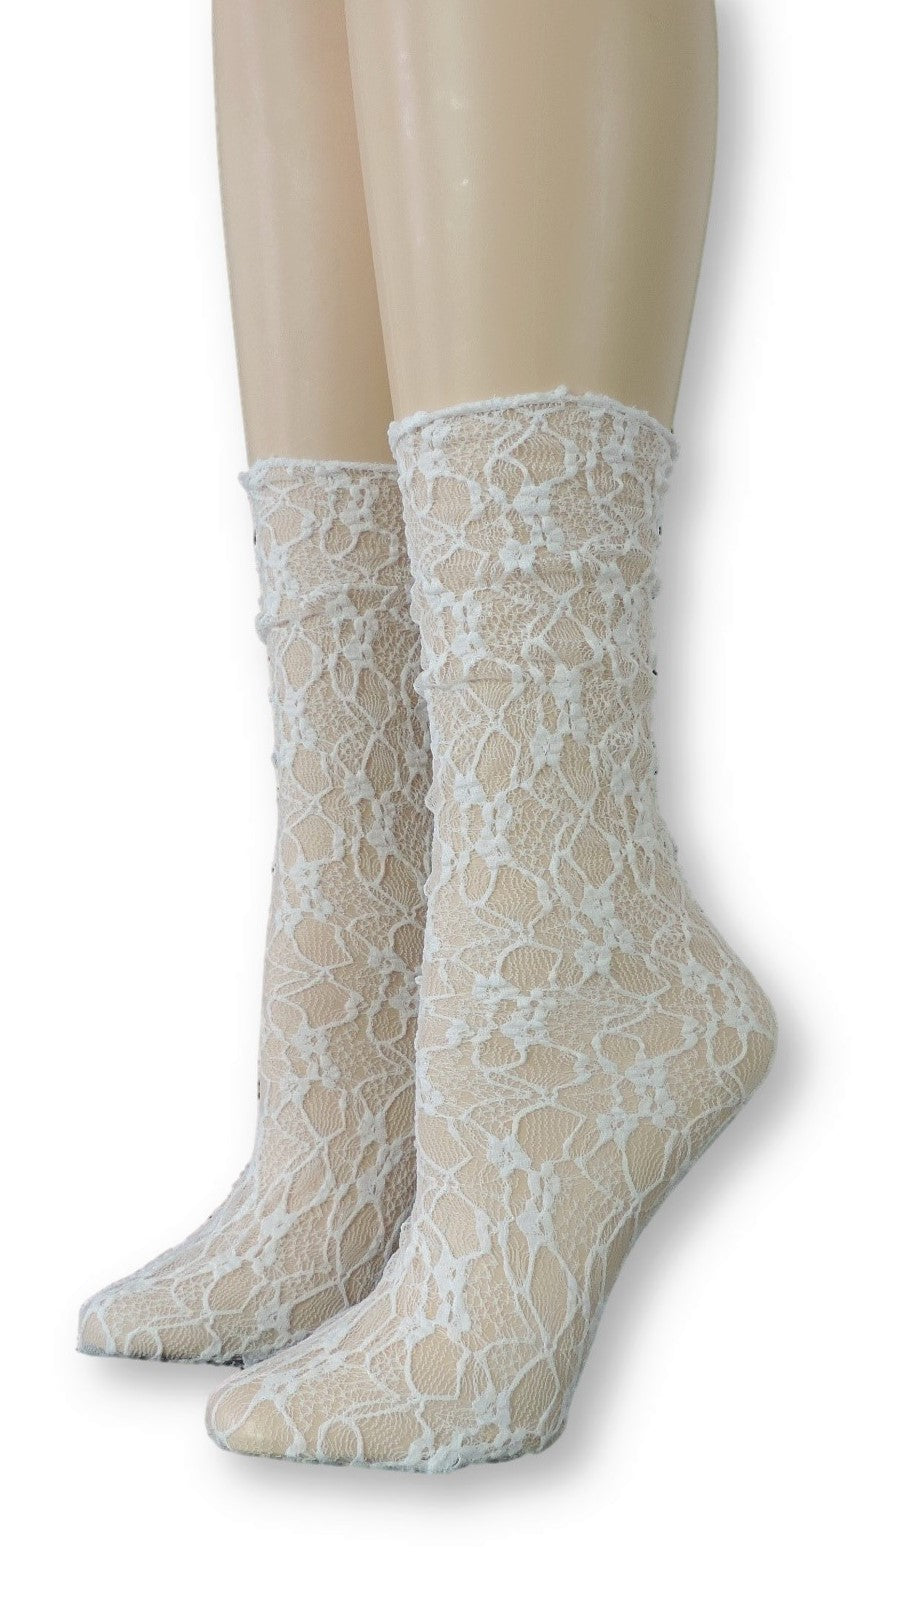 Snow Flake Mesh Socks - Global Trendz Fashion®